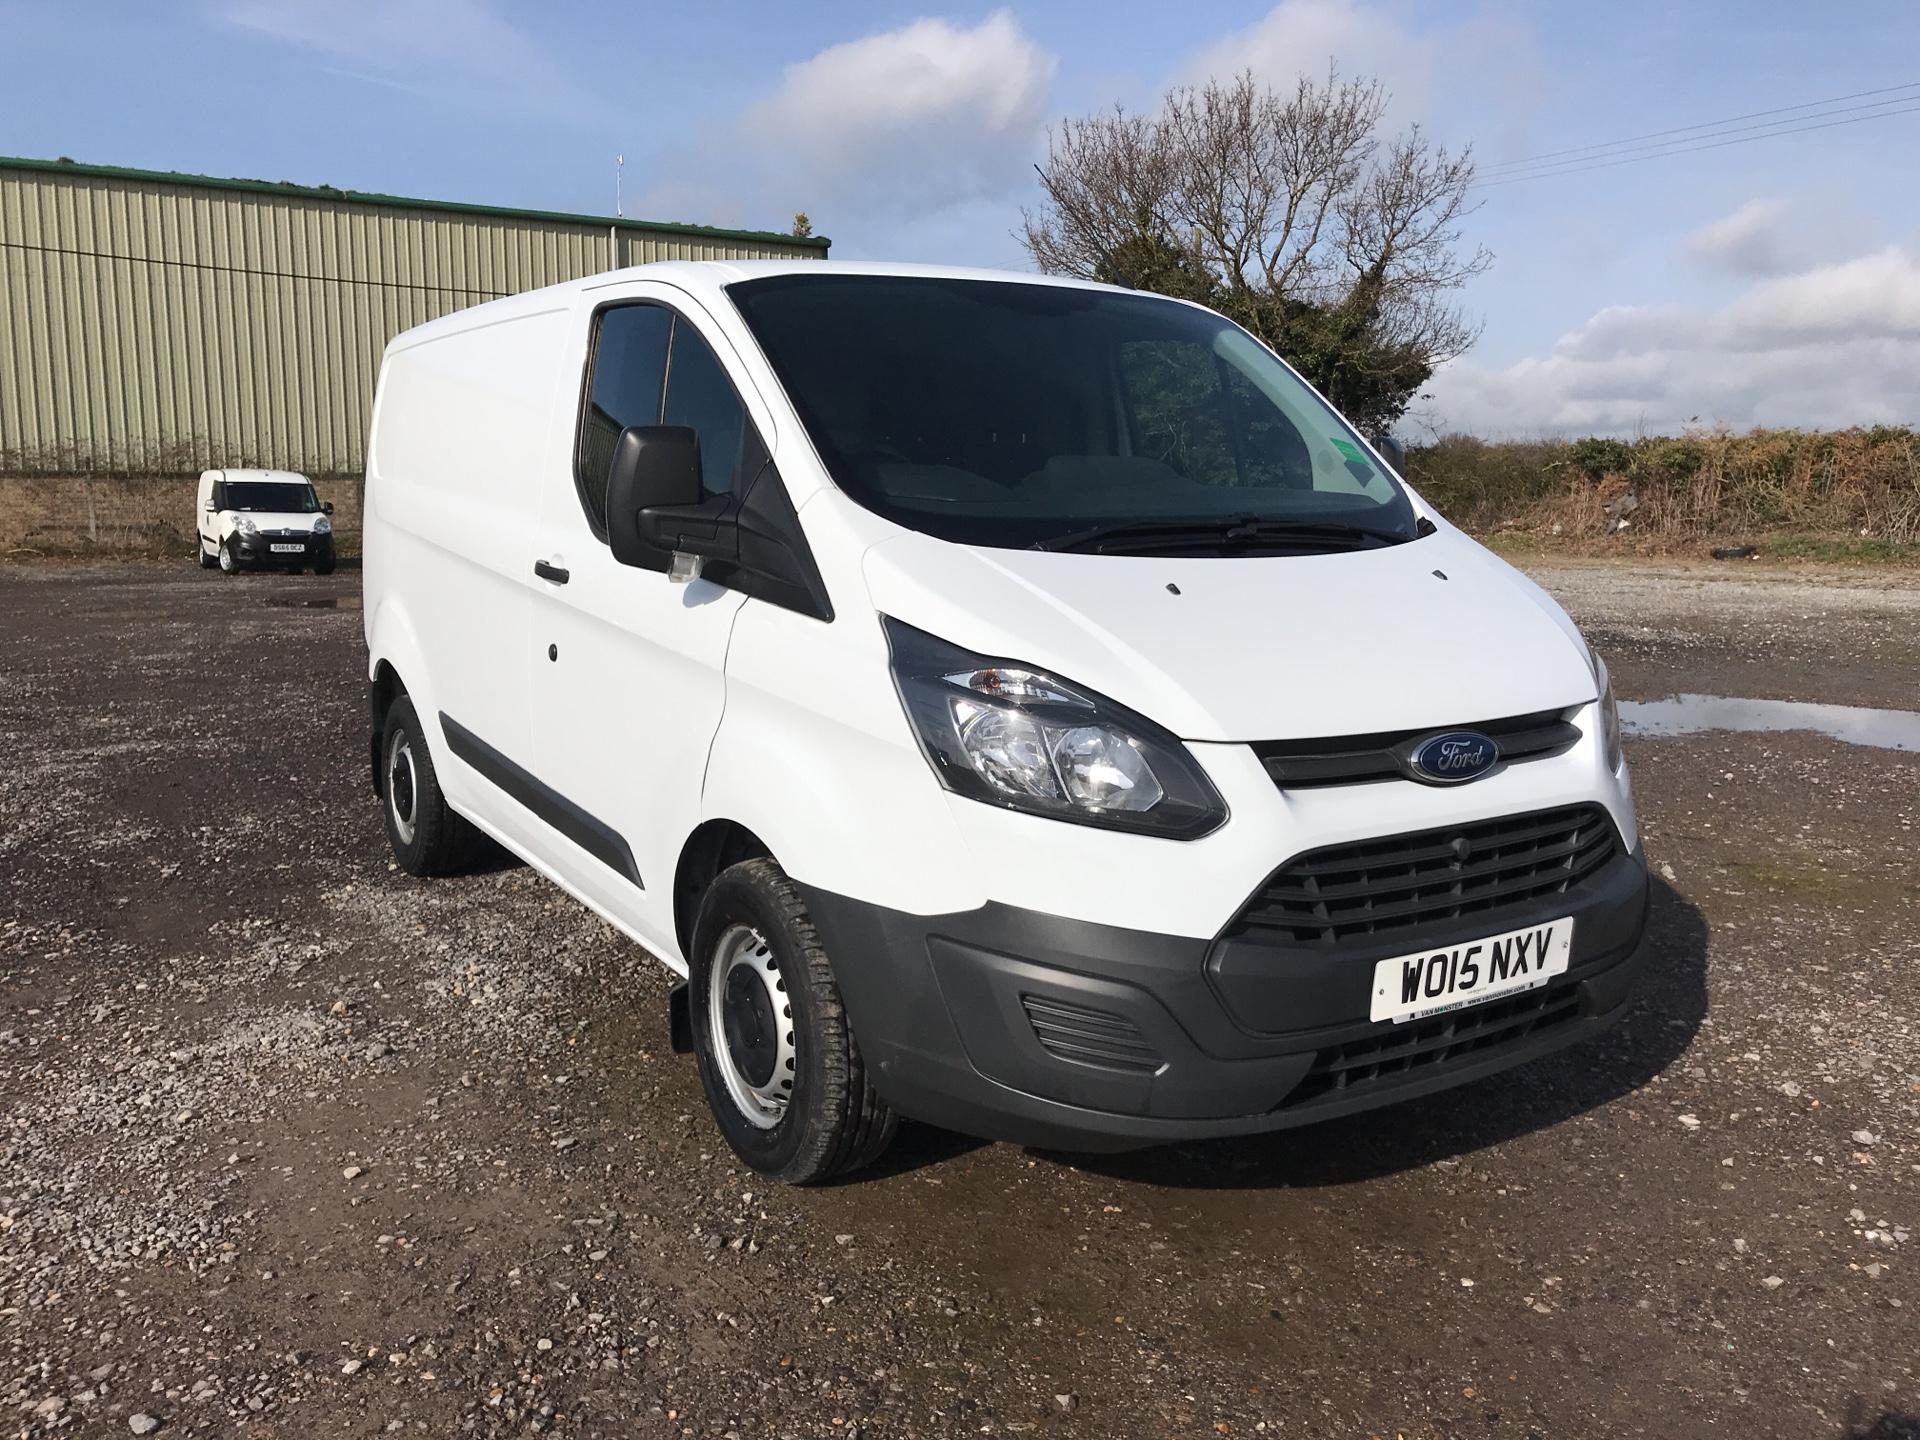 2015 Ford Transit Custom 290 L1 DIESEL FWD 2.2 TDCI 100PS LOW ROOF VAN EURO 5 (WO15NXV)